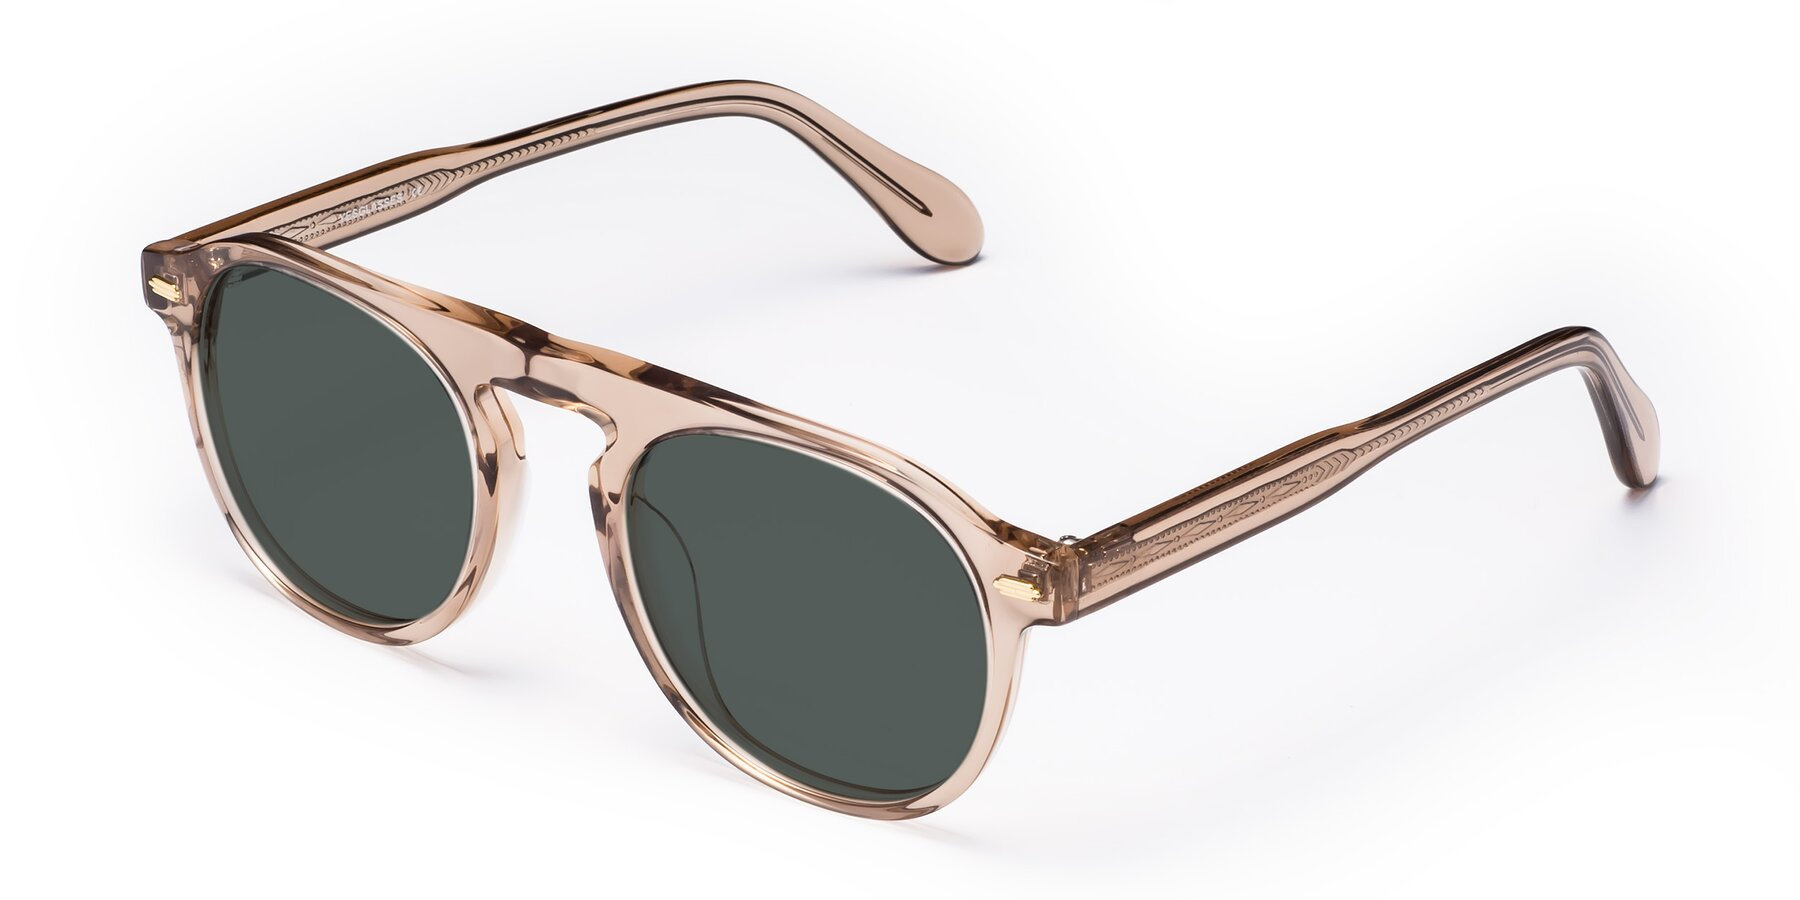 Angle of Mufasa in light Brown with Gray Polarized Lenses